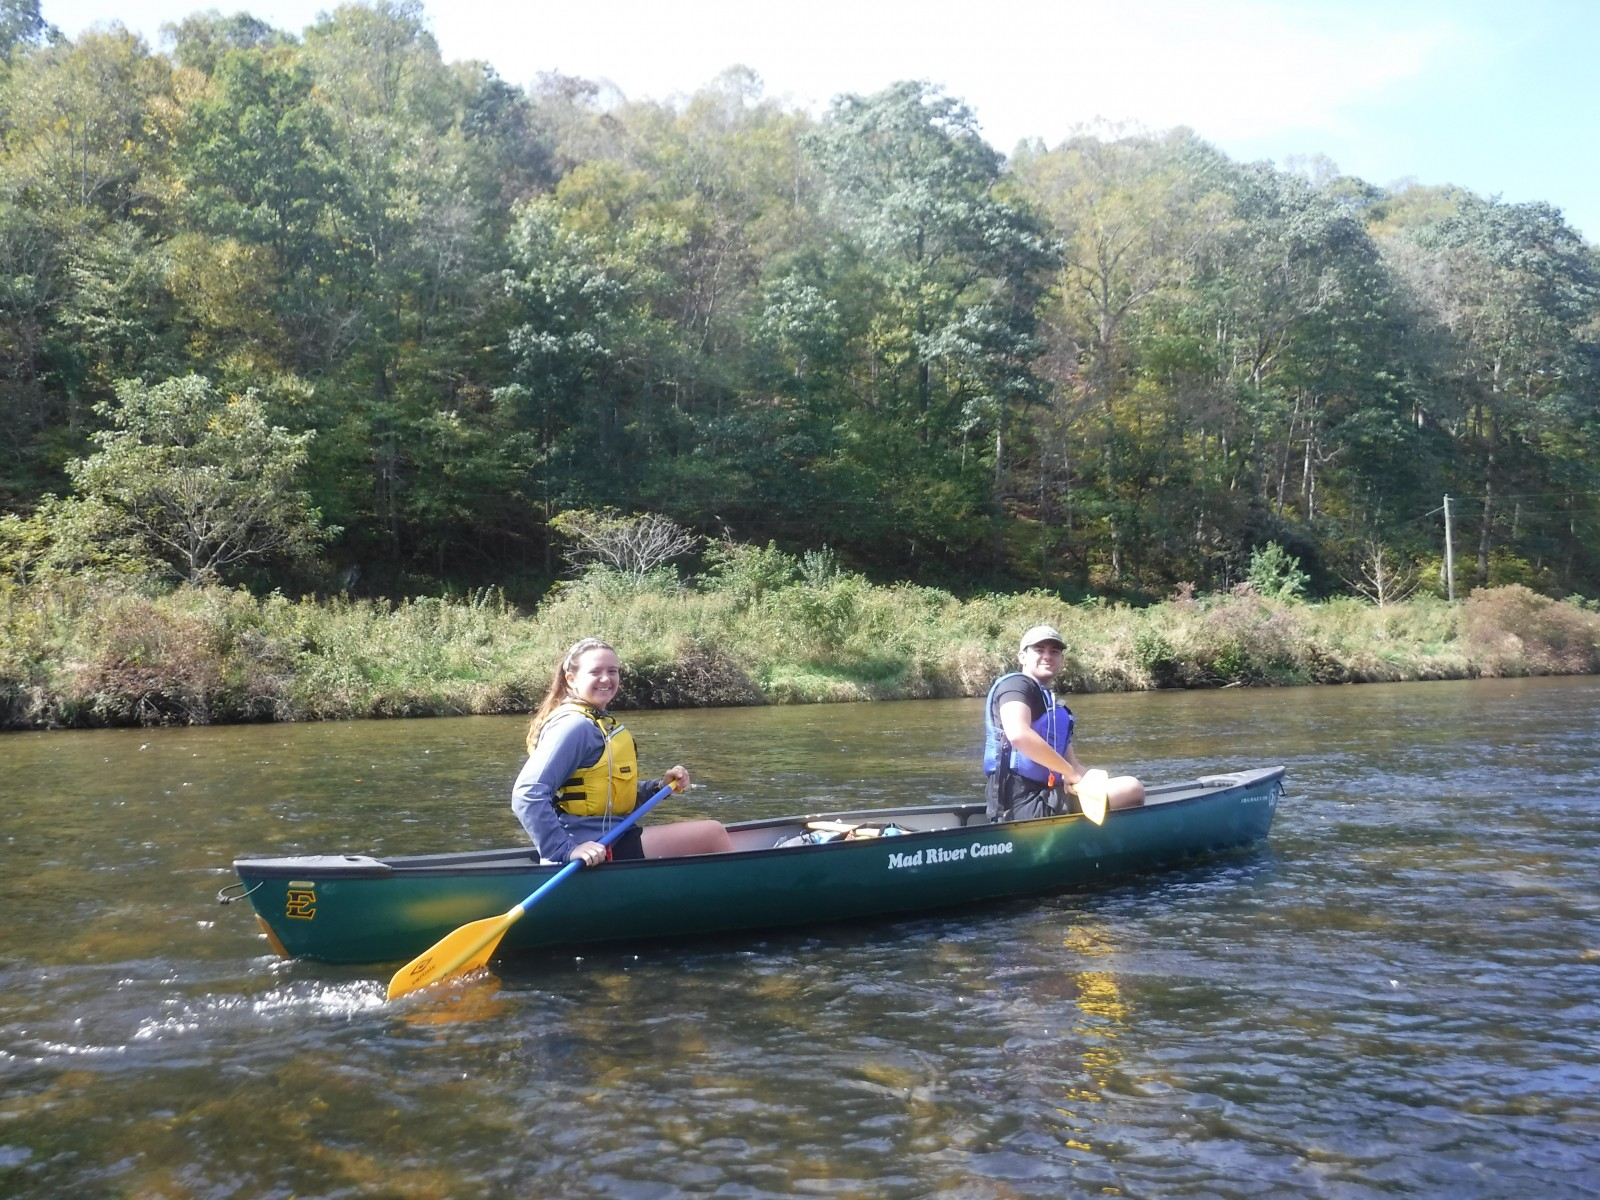 Two students canoeing